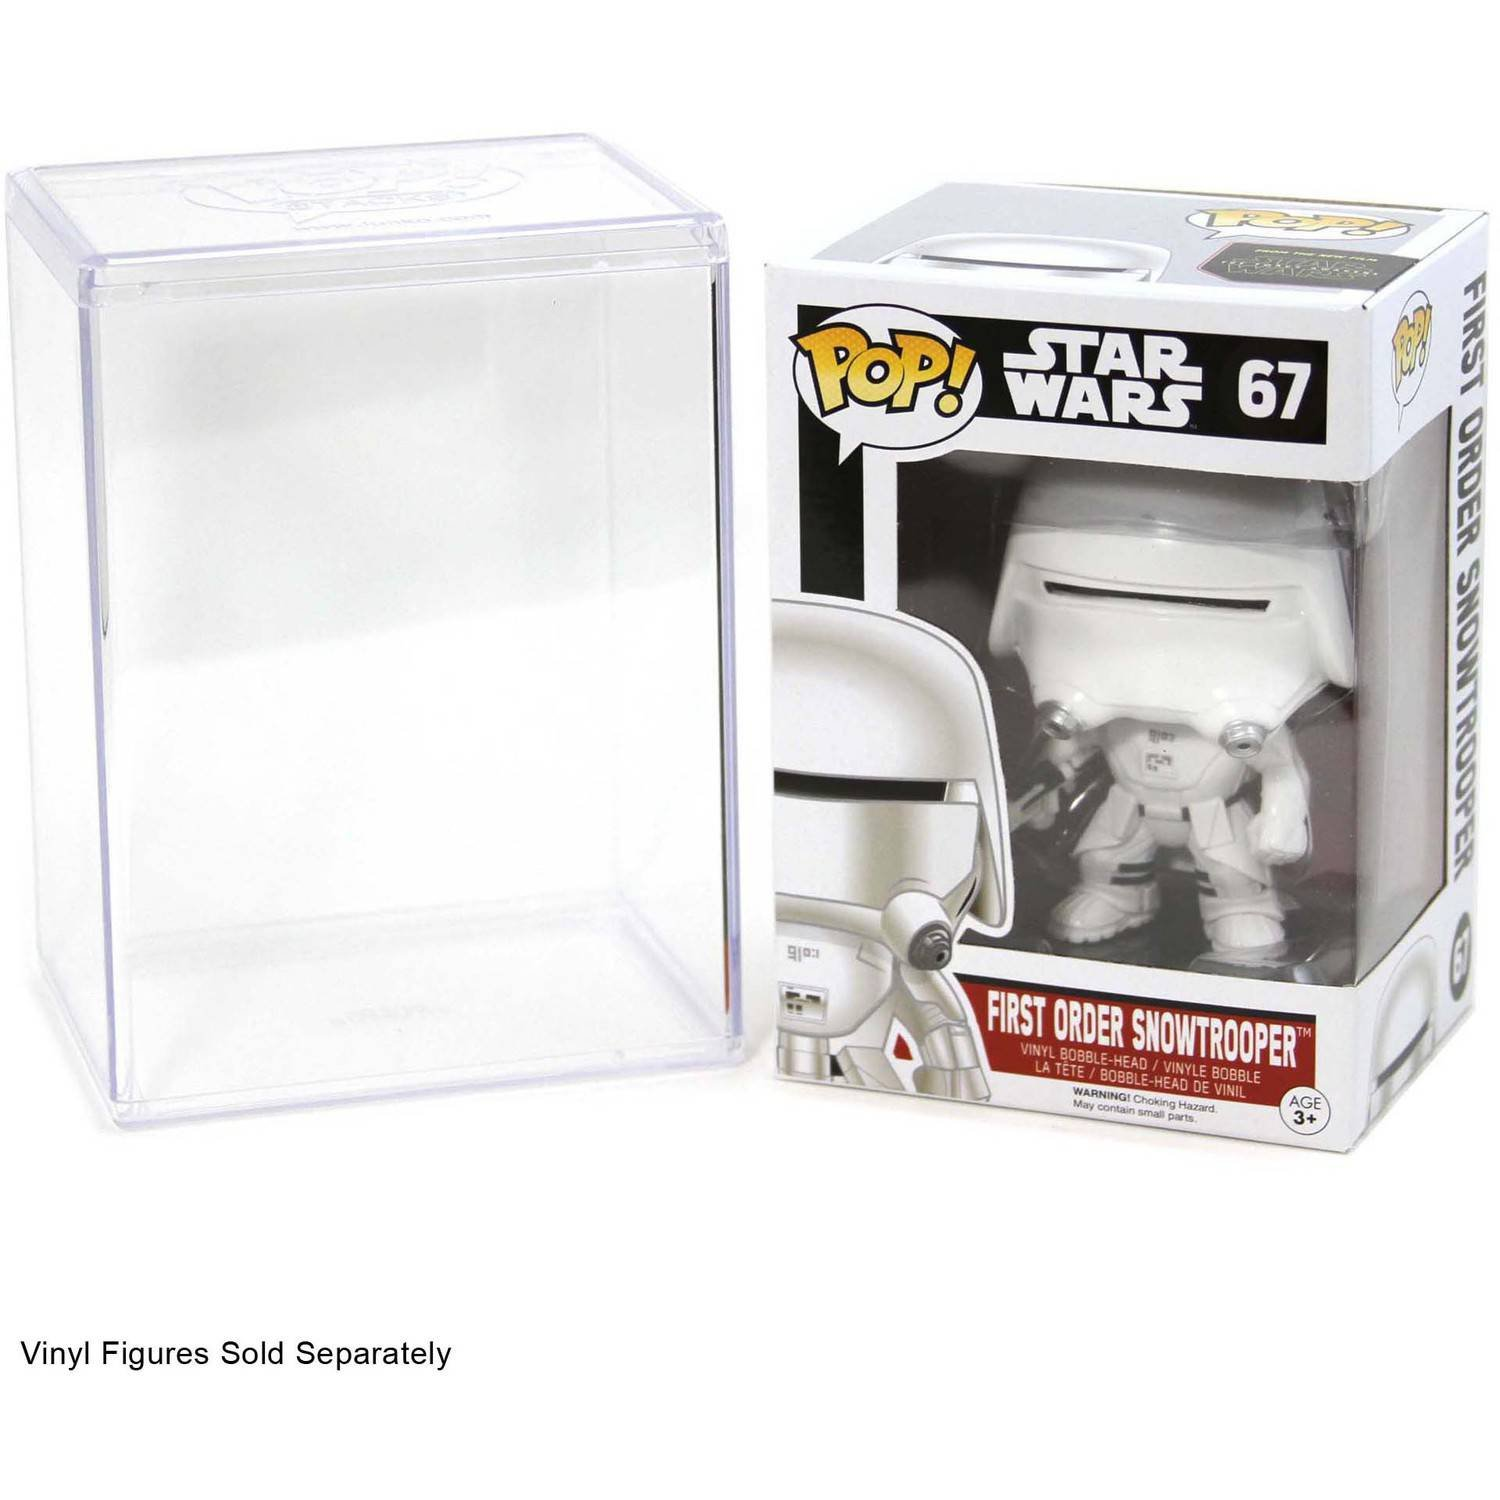 Funko Pop Stacks 6-Pack #1 Seller - Hard Plastic Protector Case for Regular Size Pop Boxed Figures: Amazon.es: Juguetes y juegos